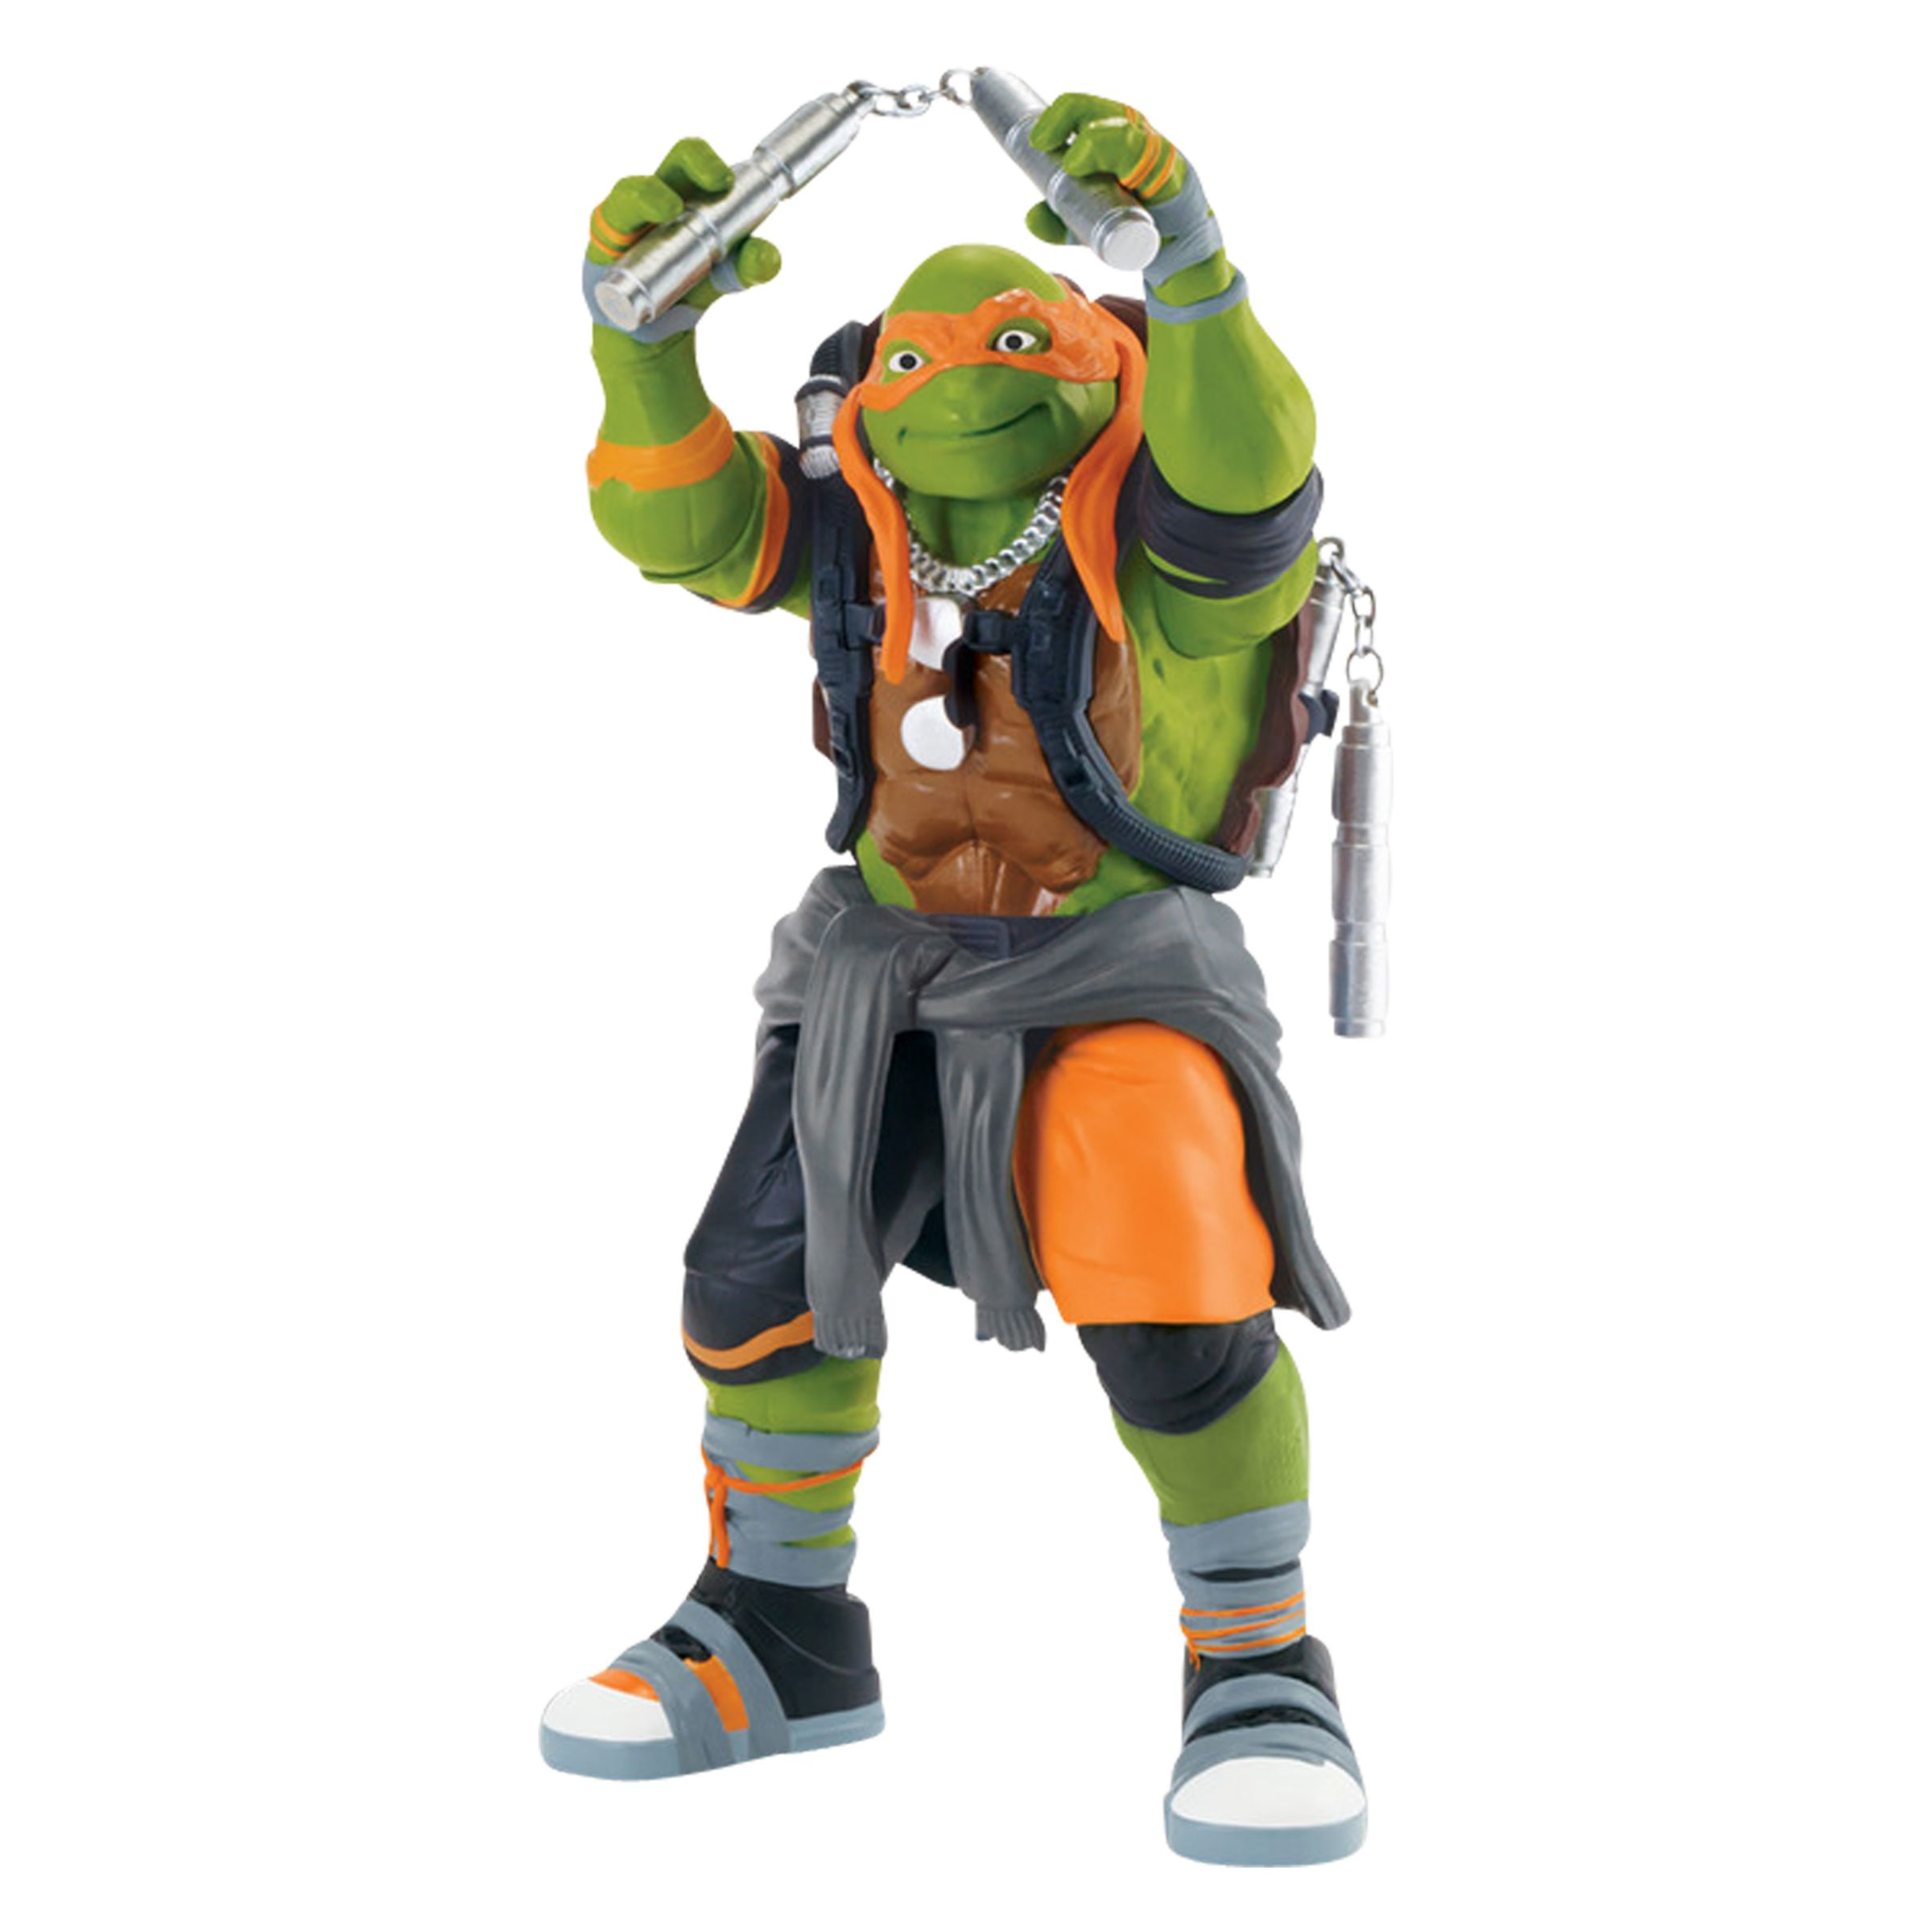 Teenage Mutant Ninja Turtles 2 Out Of The Shadows Mikey Deluxe Action Figure At John Lewis Partners